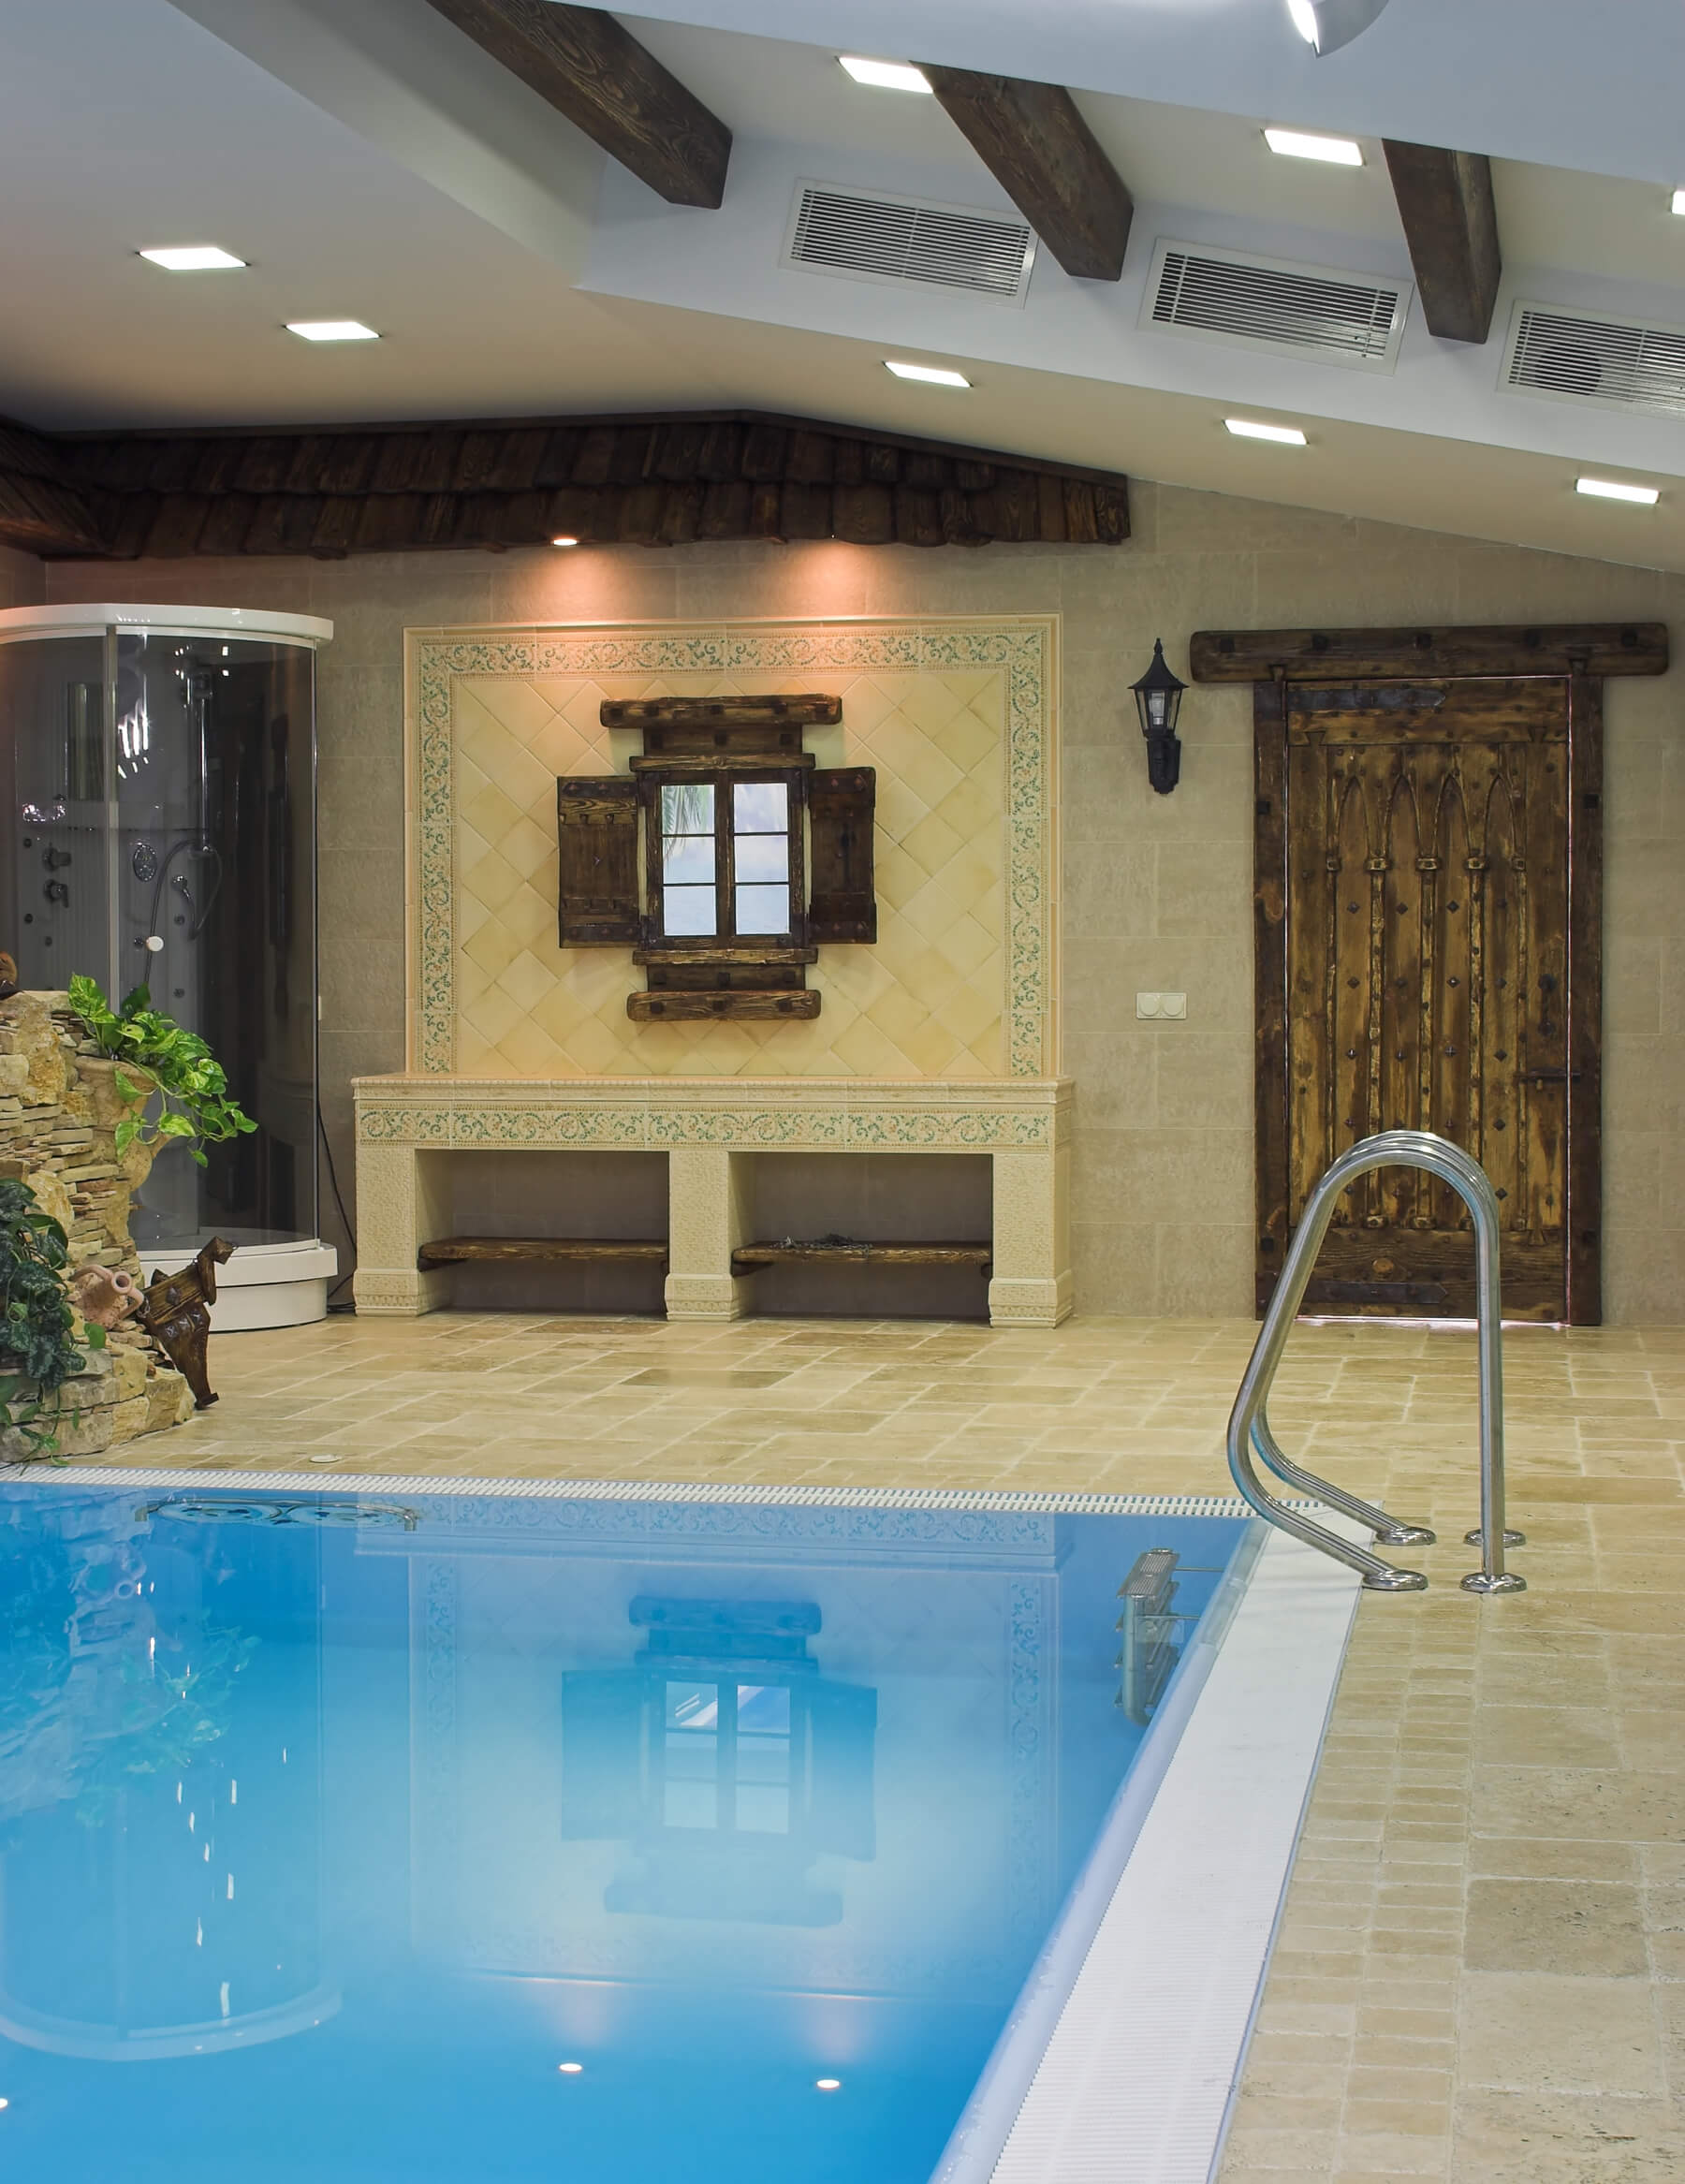 Screened In Covered And Indoor Pool Designs - Rooms with pools